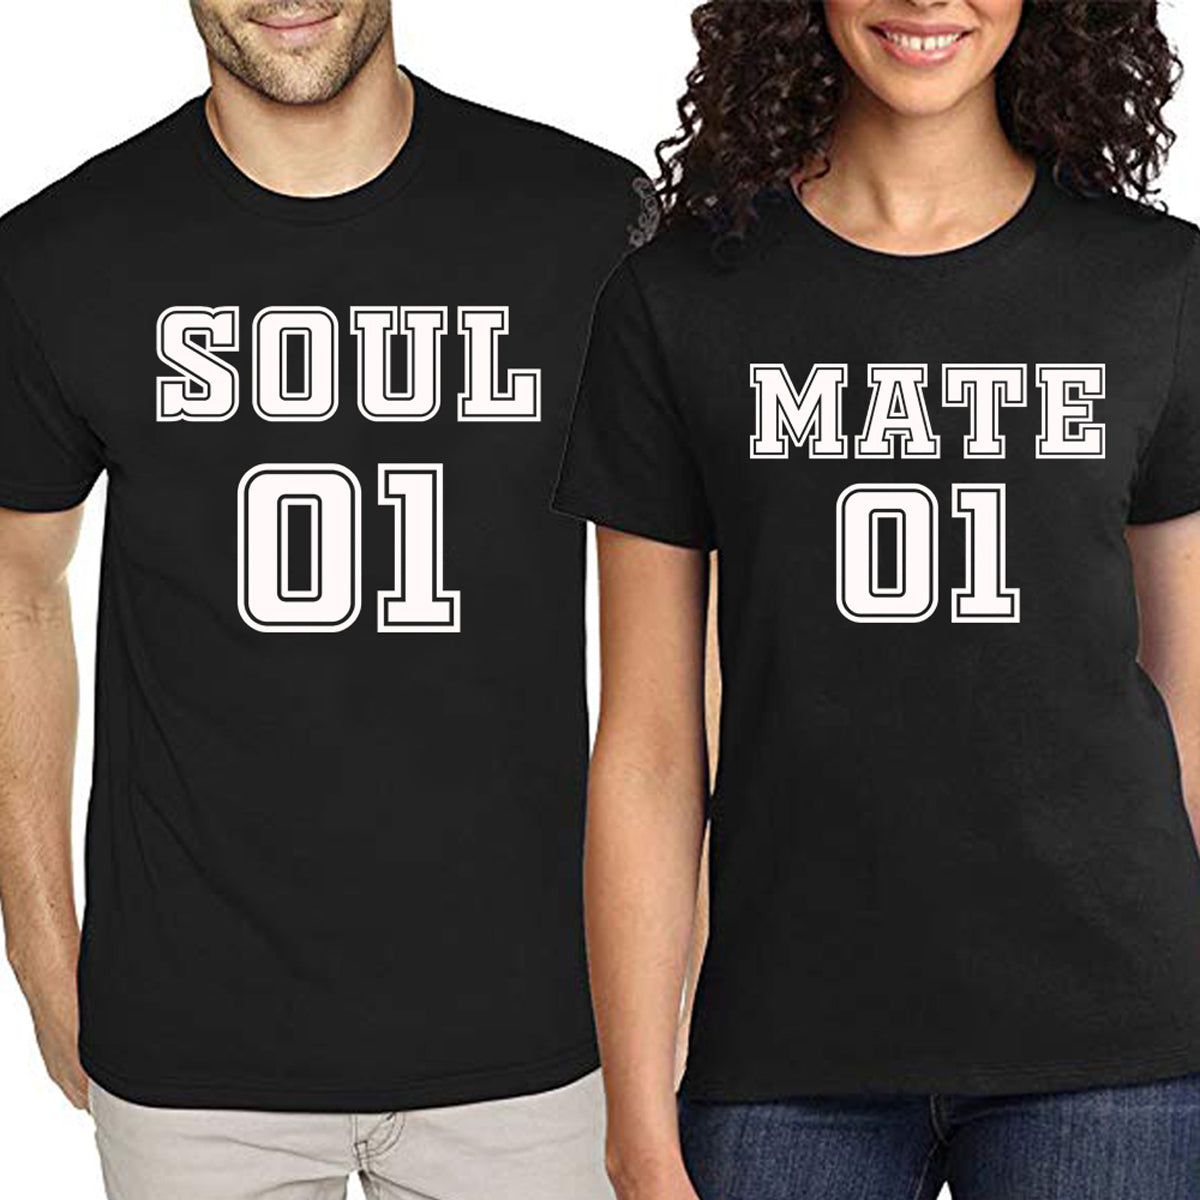 Sprinklecart Cotton T Shirt for Couples | Matching Soul Mate Printed T Shirts